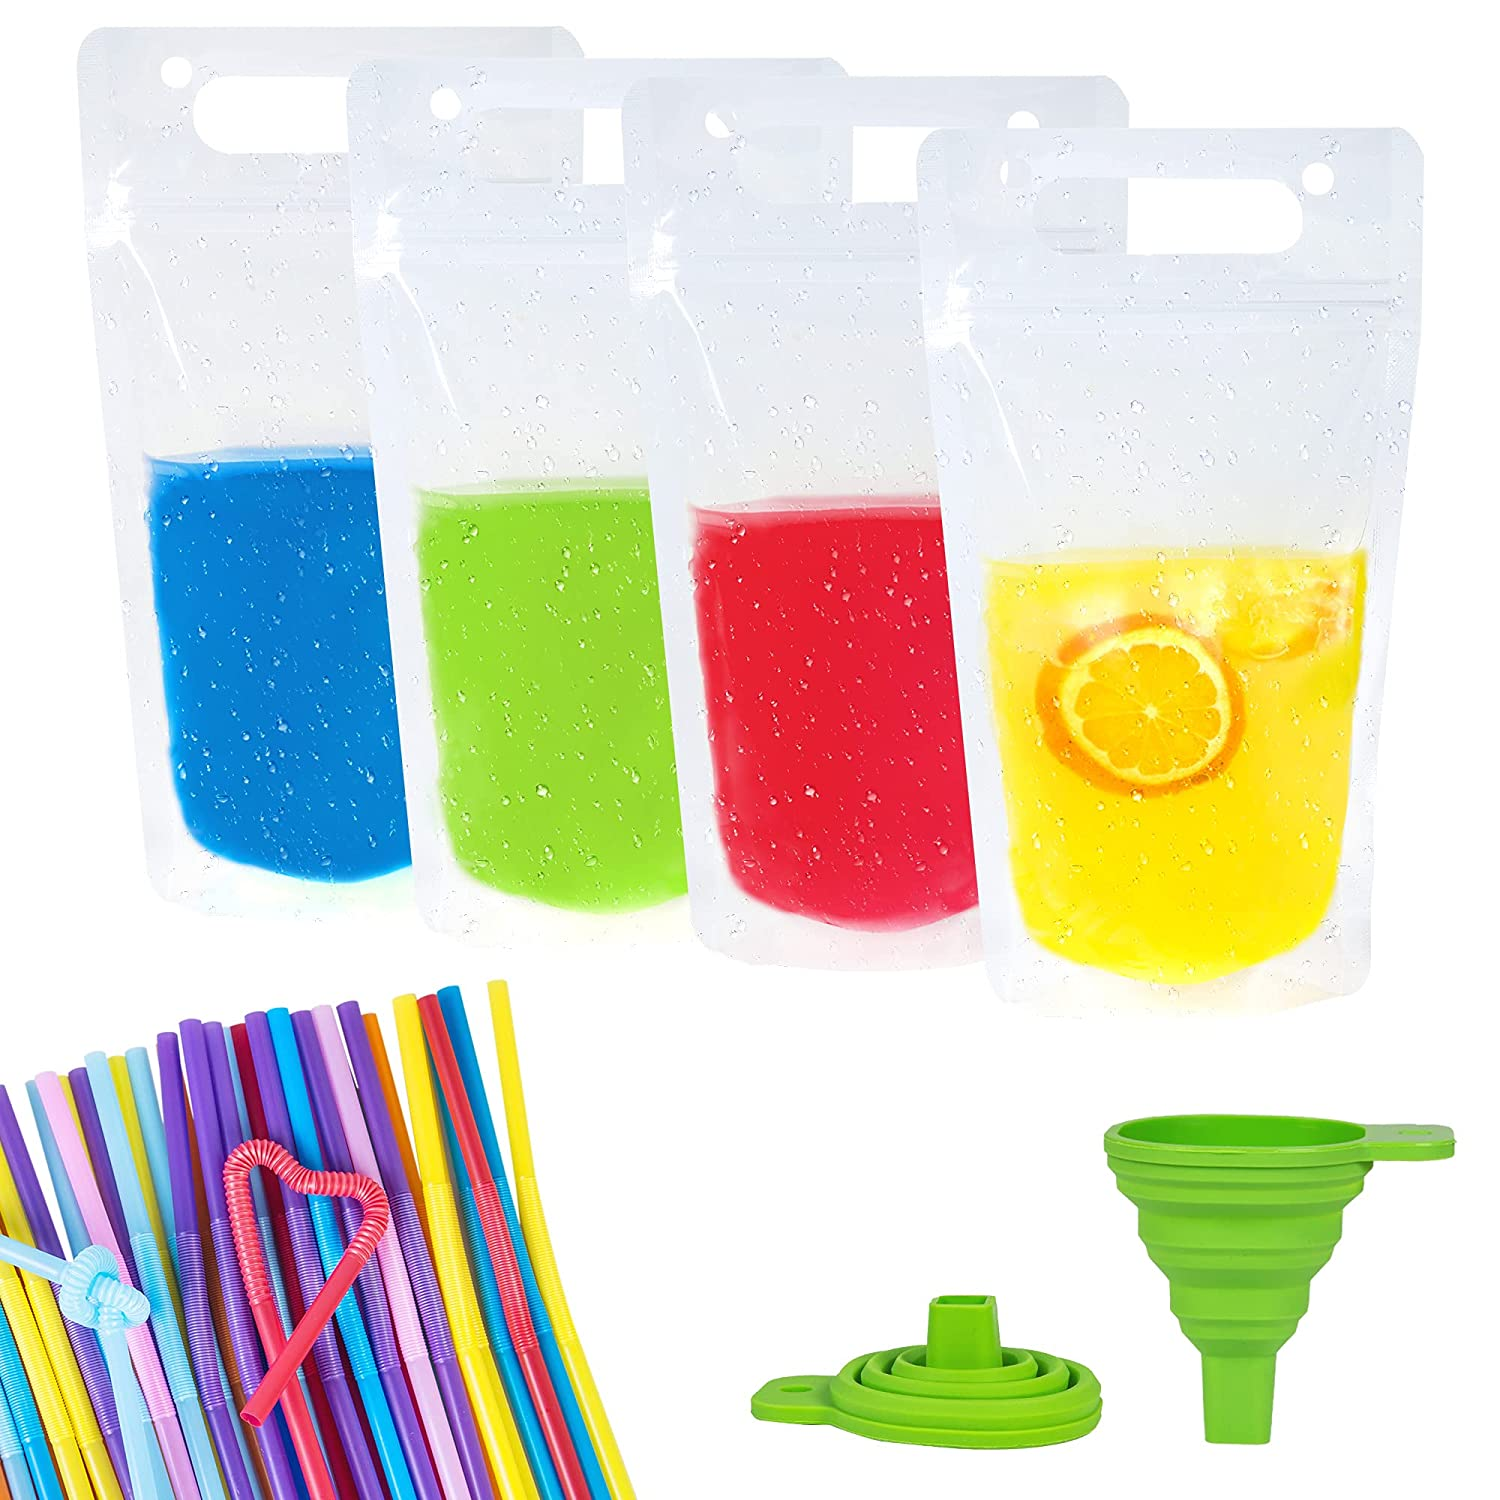 50Pcs Clear Drink Pouches, Hand-held Drink Pouches for Adults with 50 Pcs Straws and Silicone Funnel, 17oz ReusableDrink Bags No Leak Zipper Juice Bags for Cold and Hot Drinks